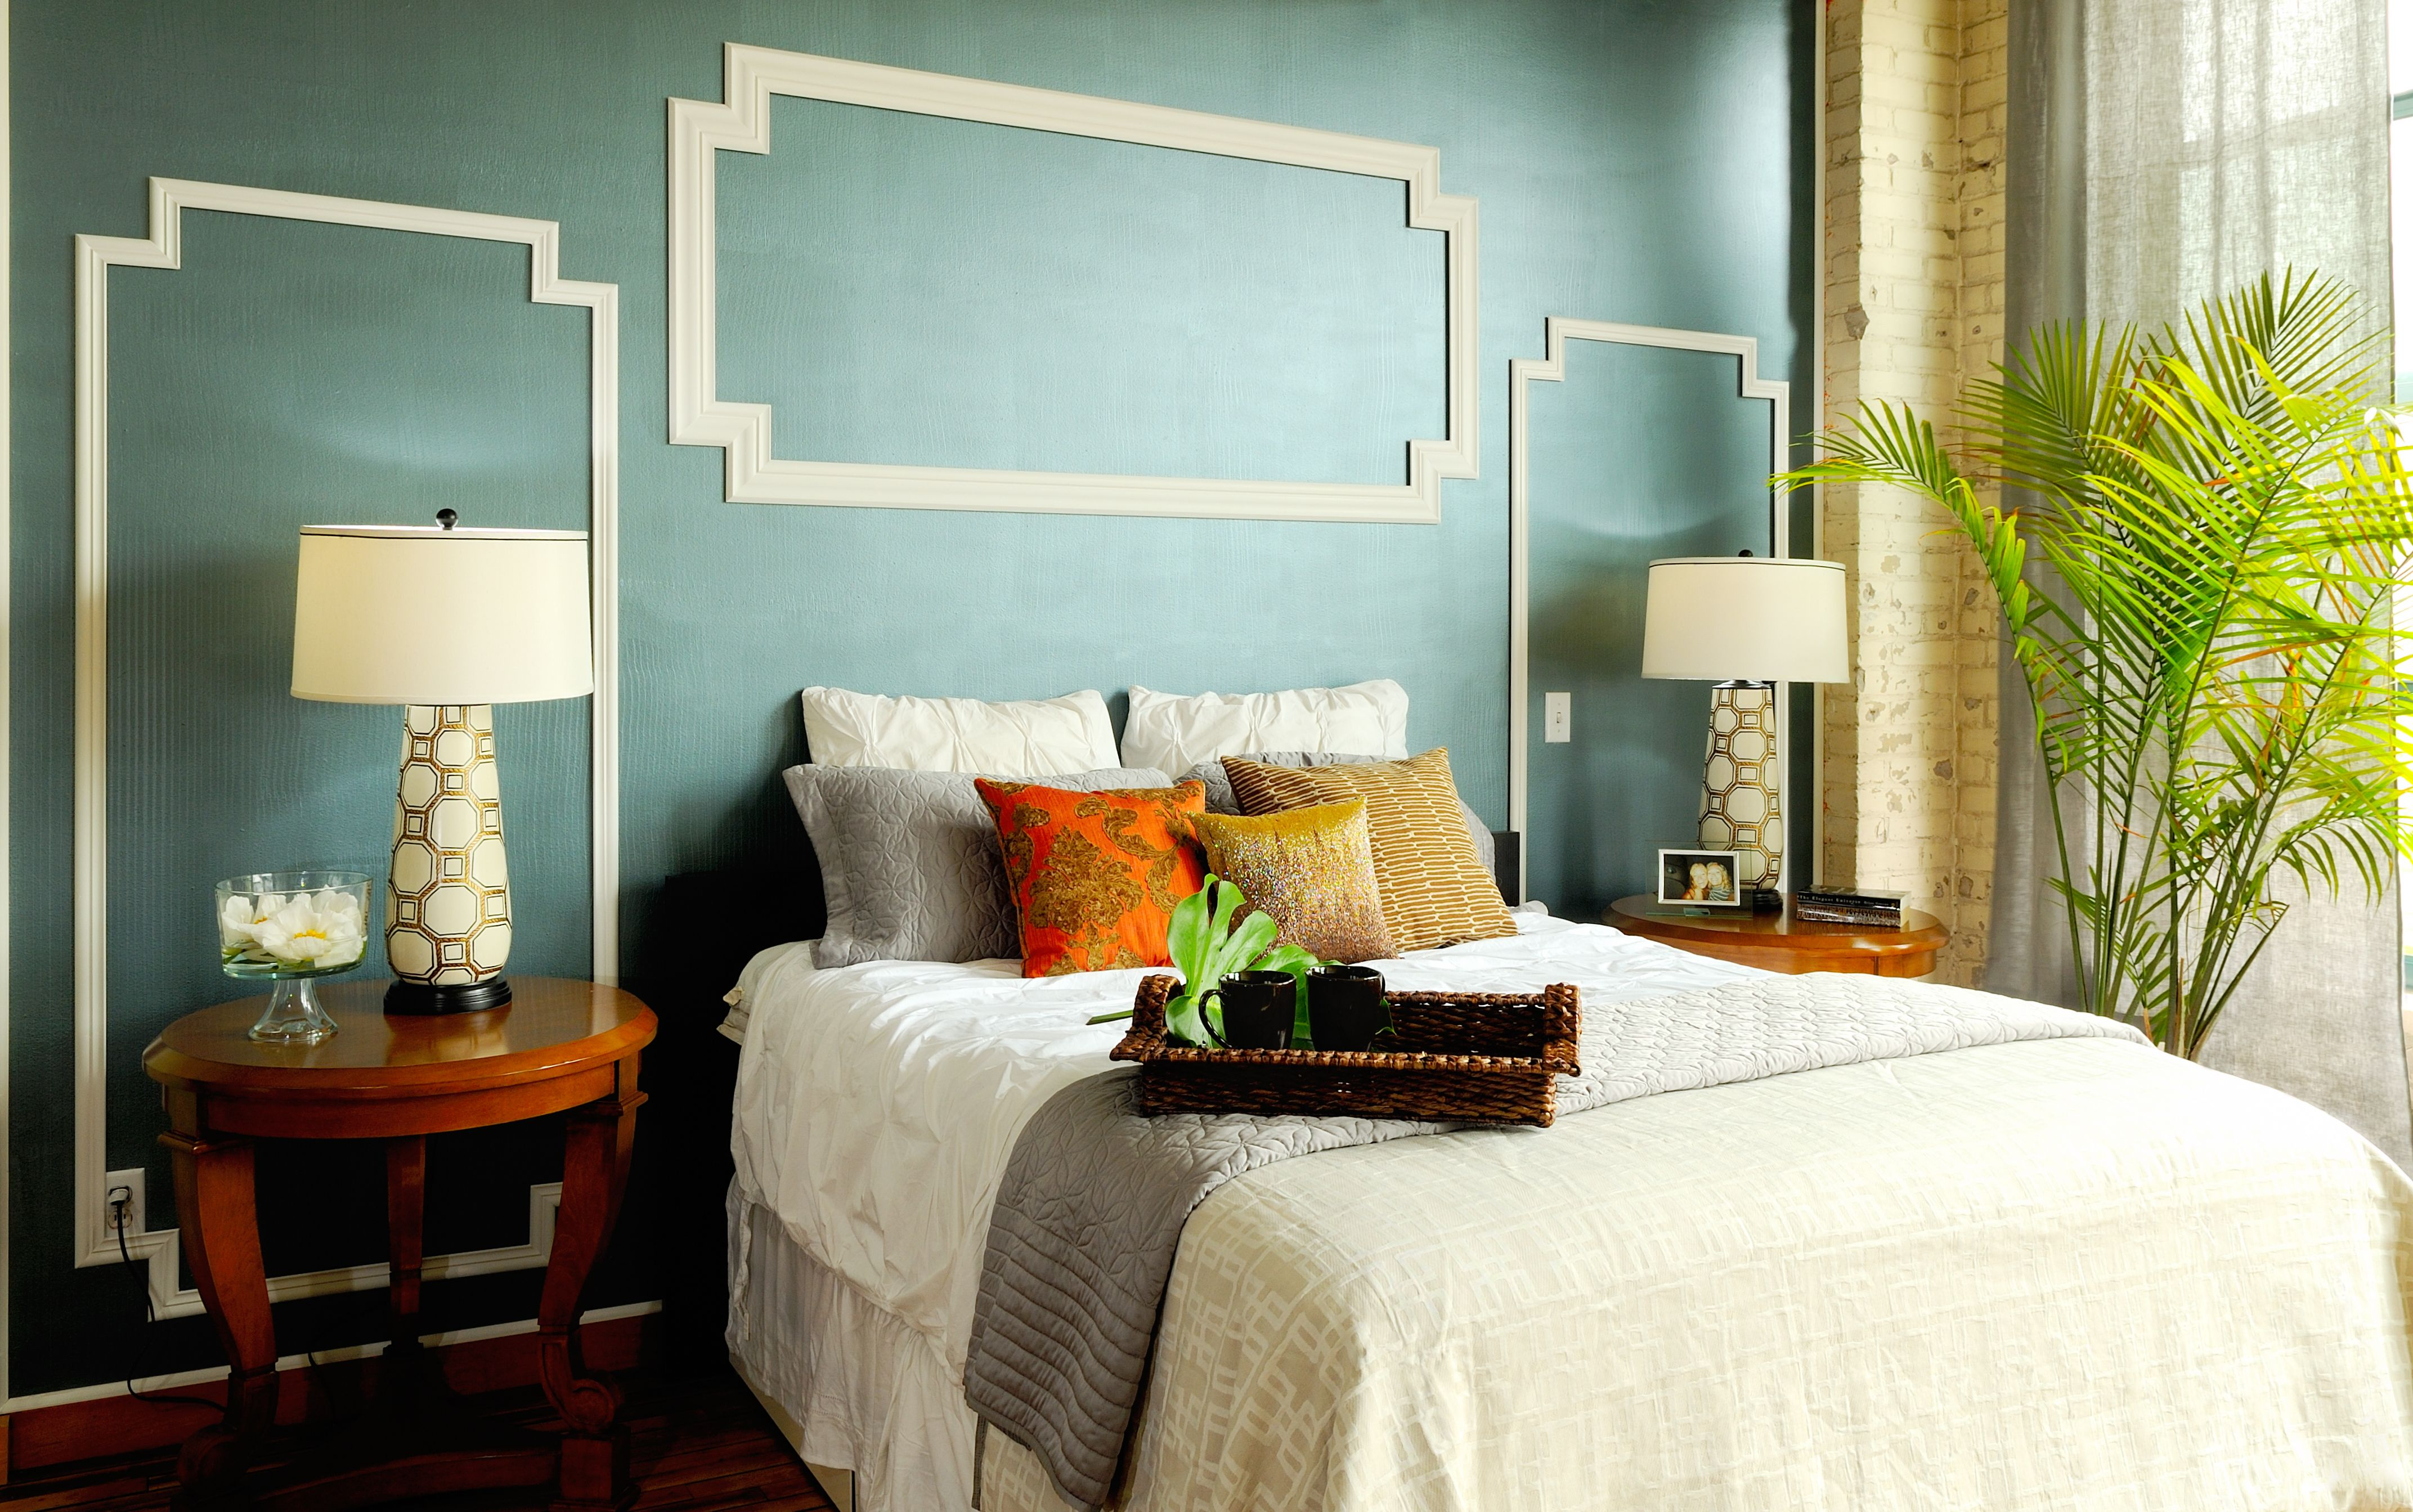 Home Design Ideas | Home Decorating & Remodeling Pictures ...